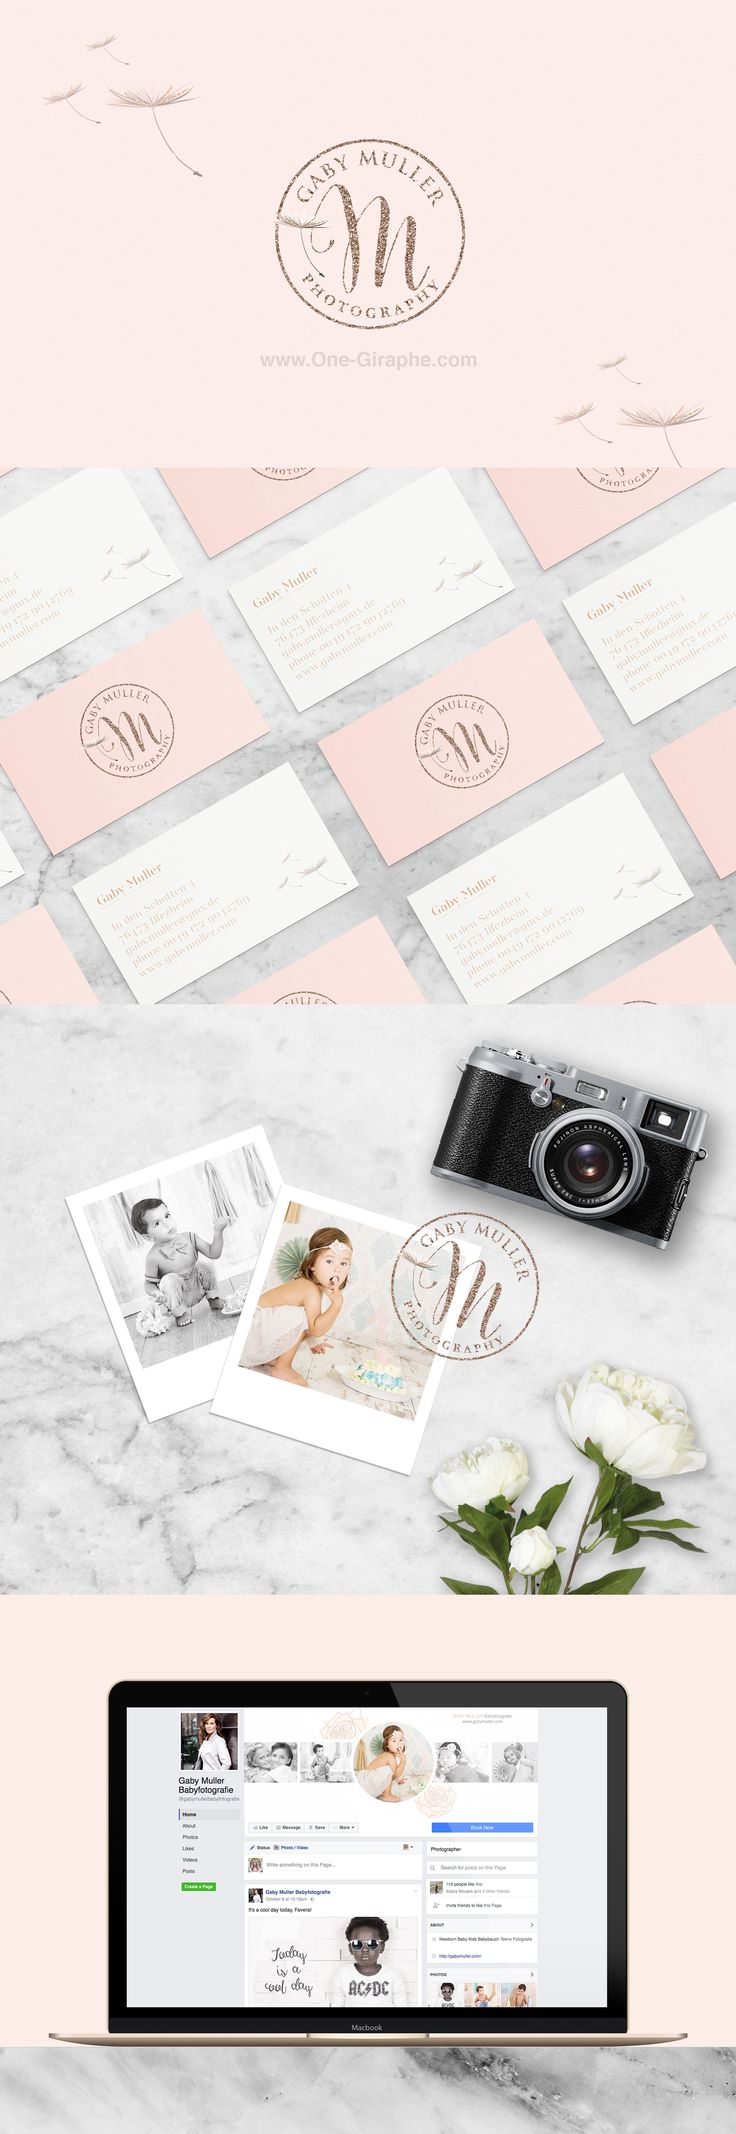 Gaby Muller Photography - Brand Identity  #brandidentity #logo #logodesign #photography #photographer #etsy #love #logos #designer #needlogo #stocklogo #behance #love #businesscard  http://one-giraphe.com/prev.php?c=203